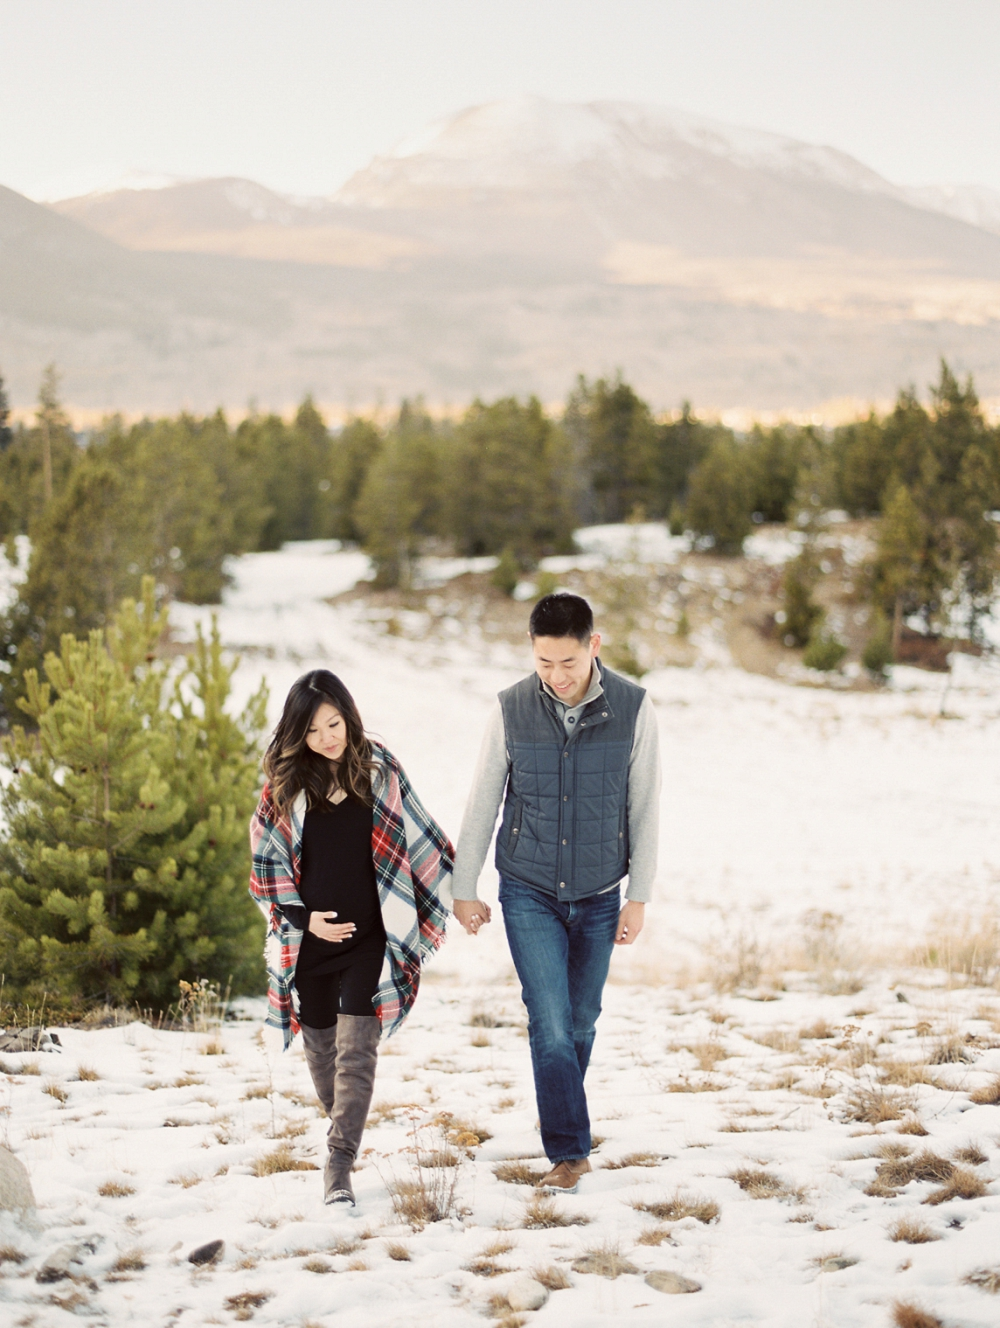 Dani-Cowan-Photography-Snowy-Colorado-Mountain-Maternity-Photoshoot28_WEB